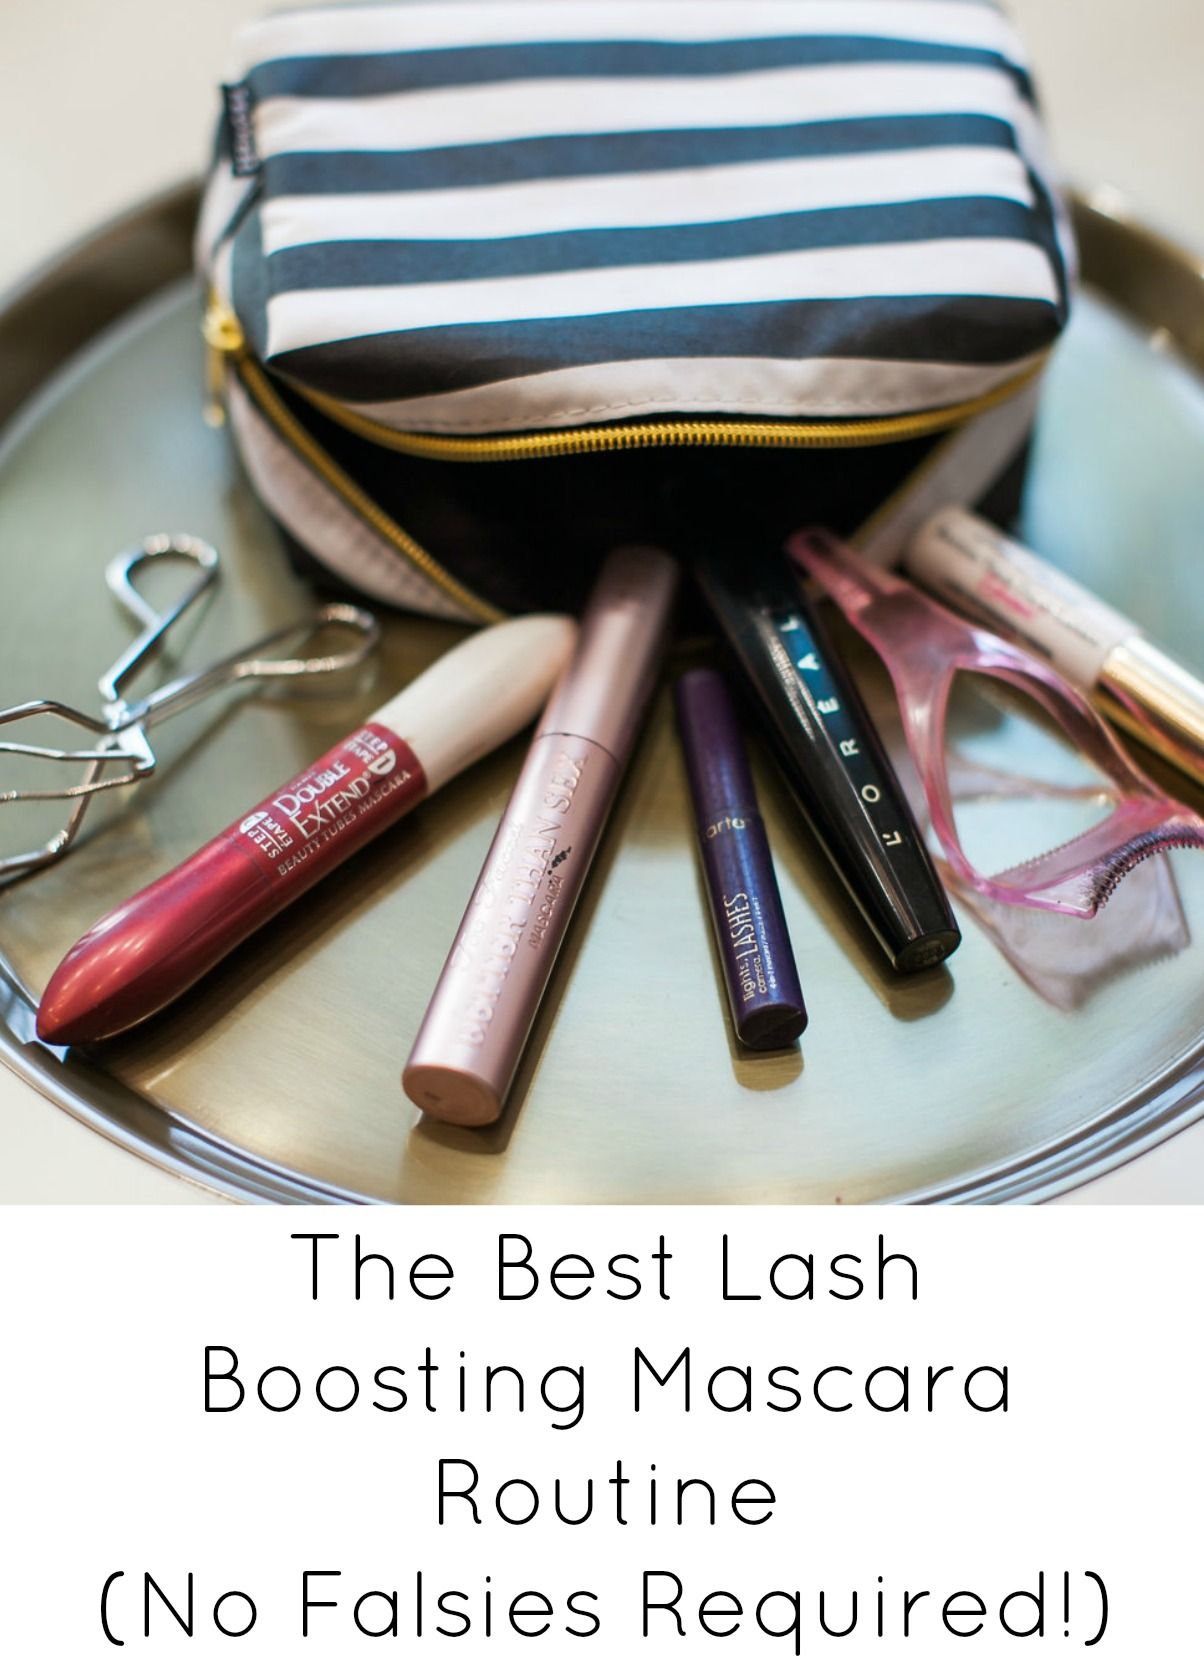 My LashBoosting Makeup Routine (No Falsies Required